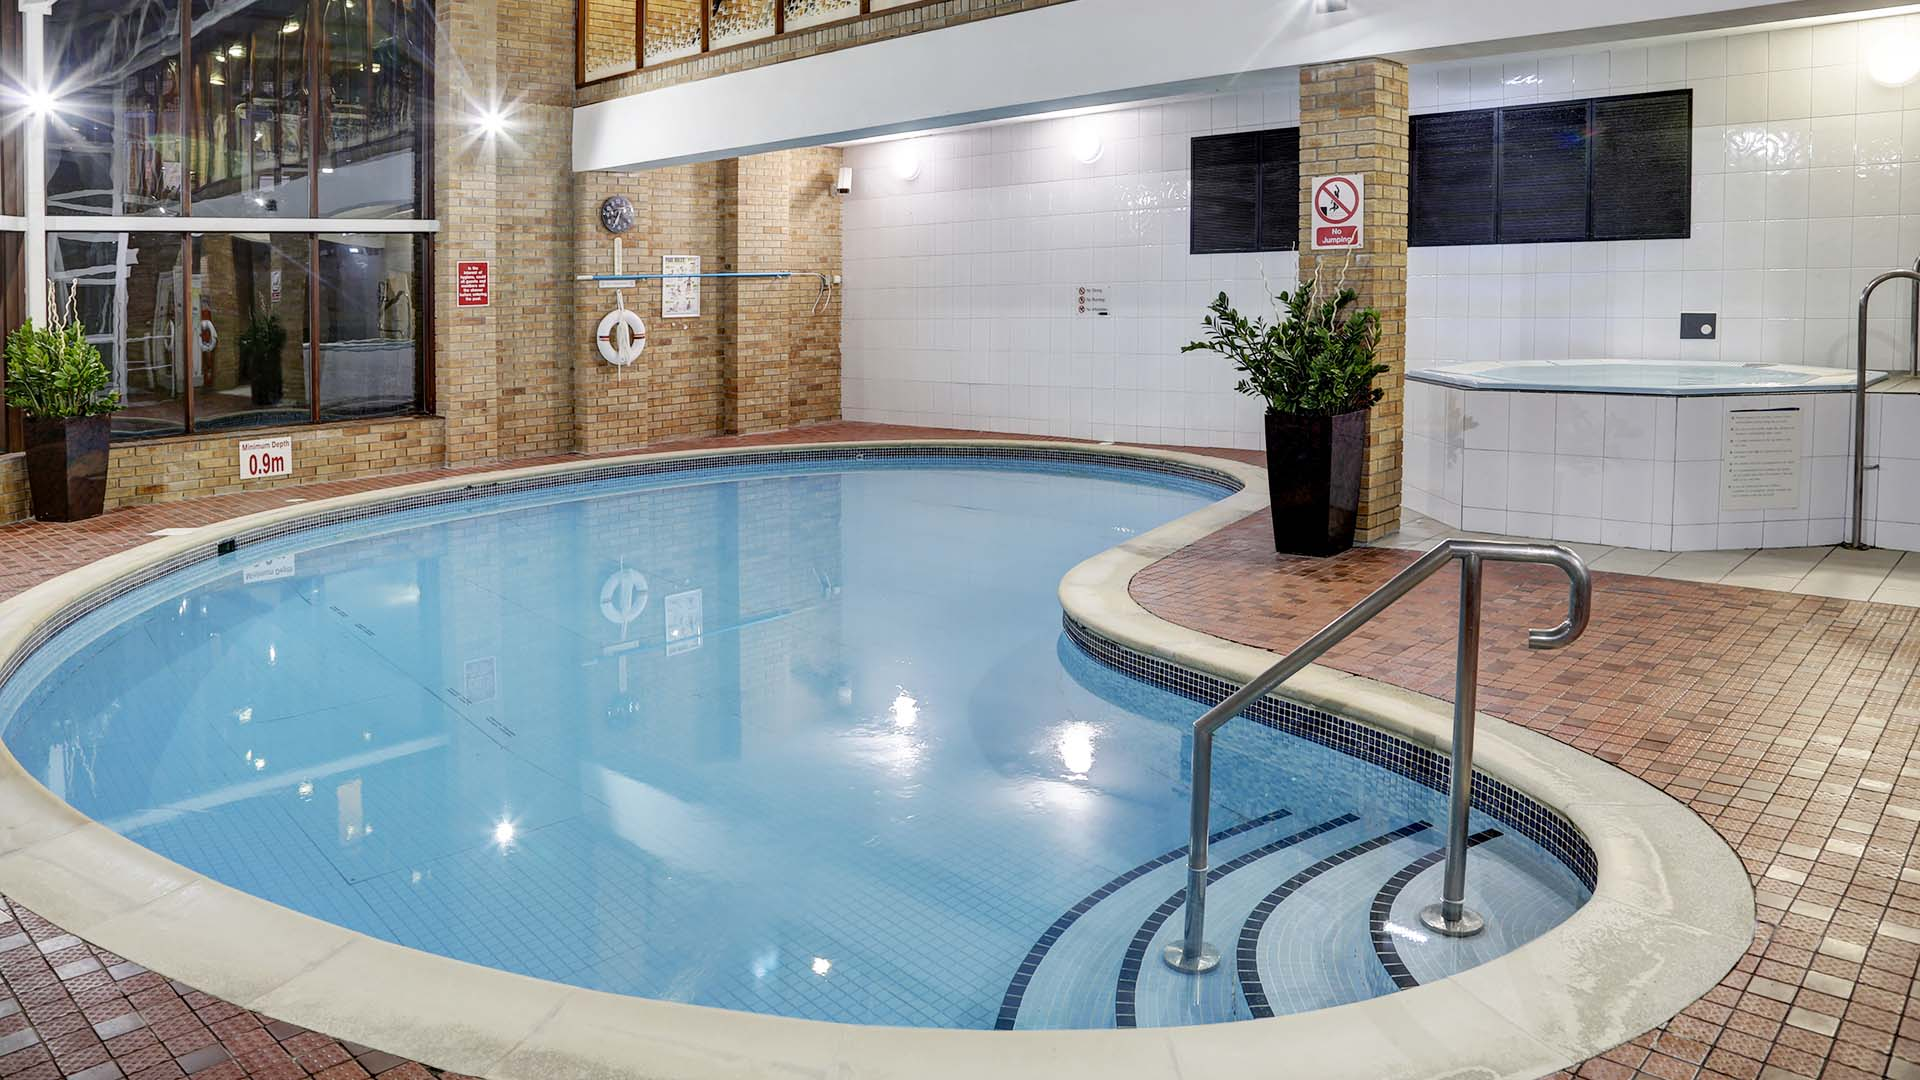 4 star Hotels in Sheffield Mercure Sheffield Kenwood Hall Hotel and Spa Pool area